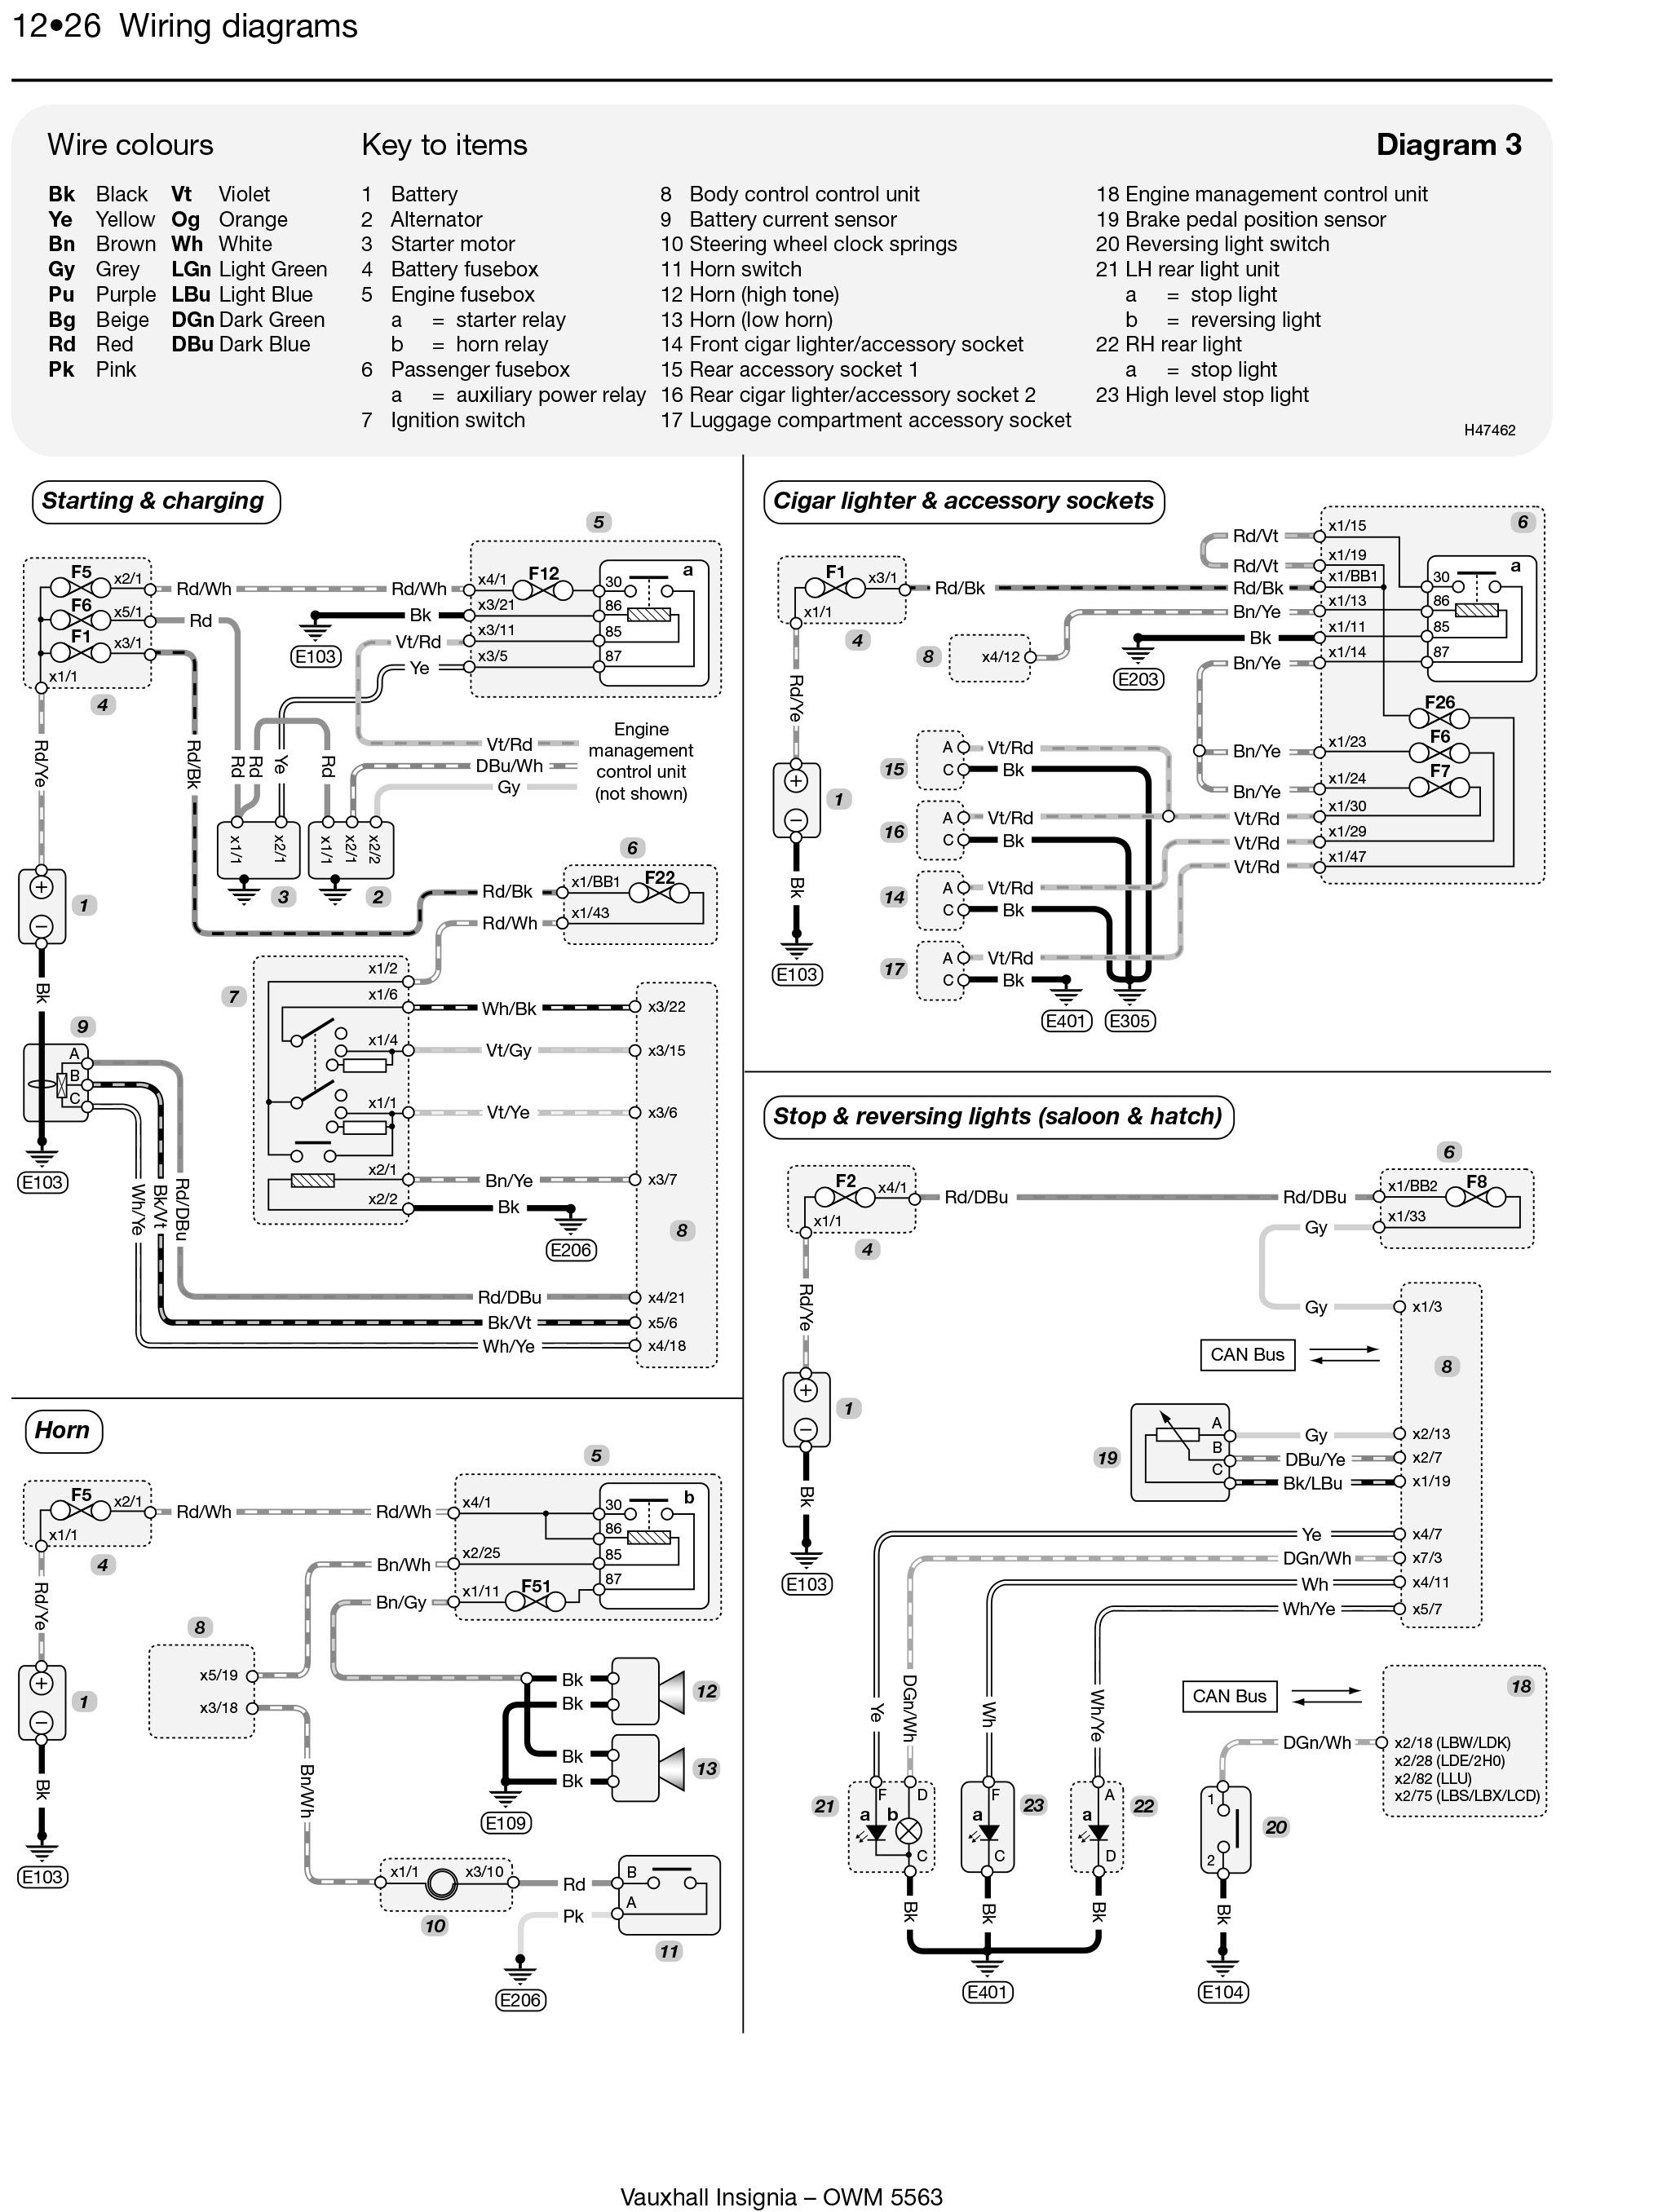 haynes wiring diagram legend wiring diagram diagram electricalhaynes wiring diagram legend [ 2049 x 2713 Pixel ]